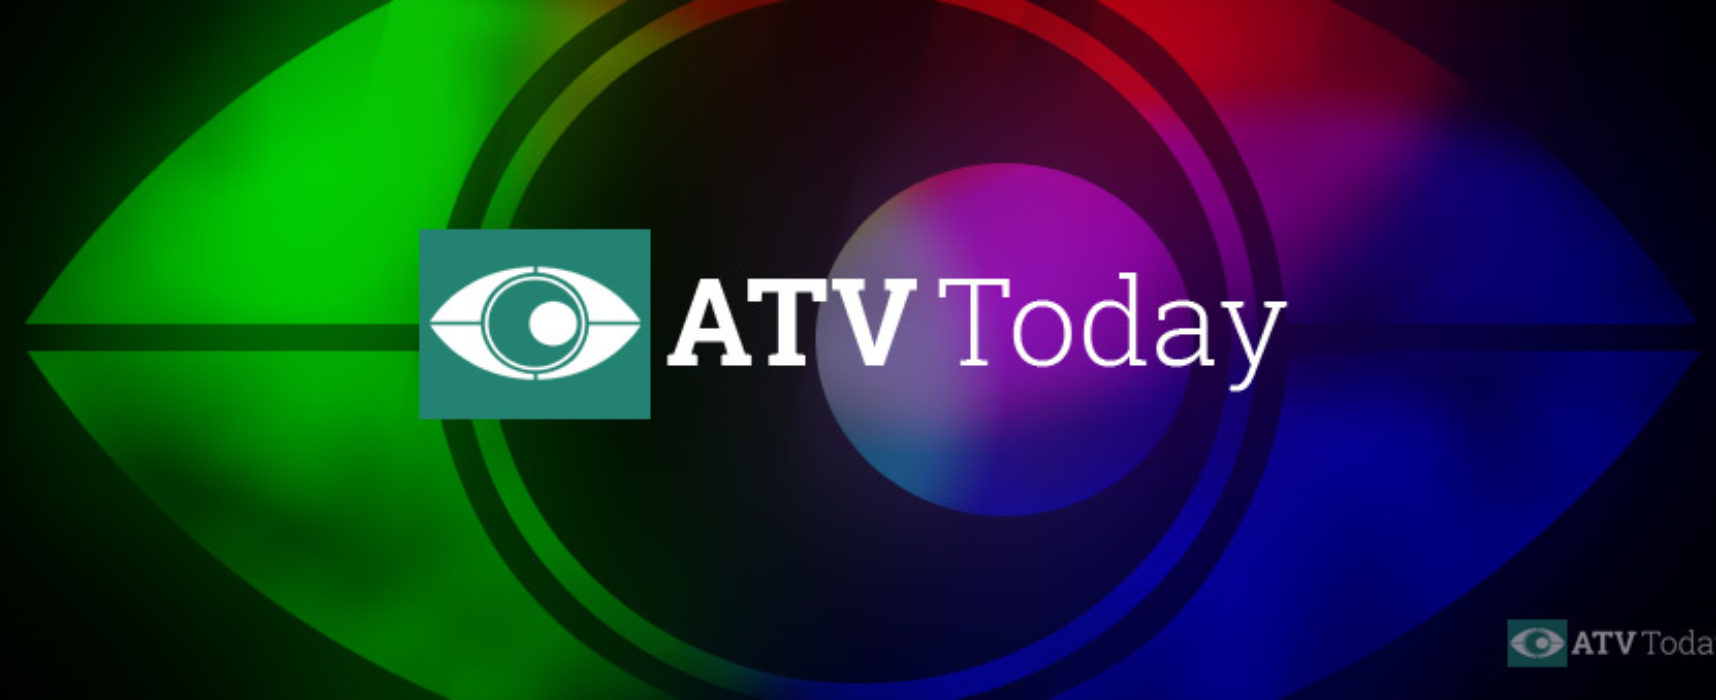 ATV Today: Round-up Thursday August 27th